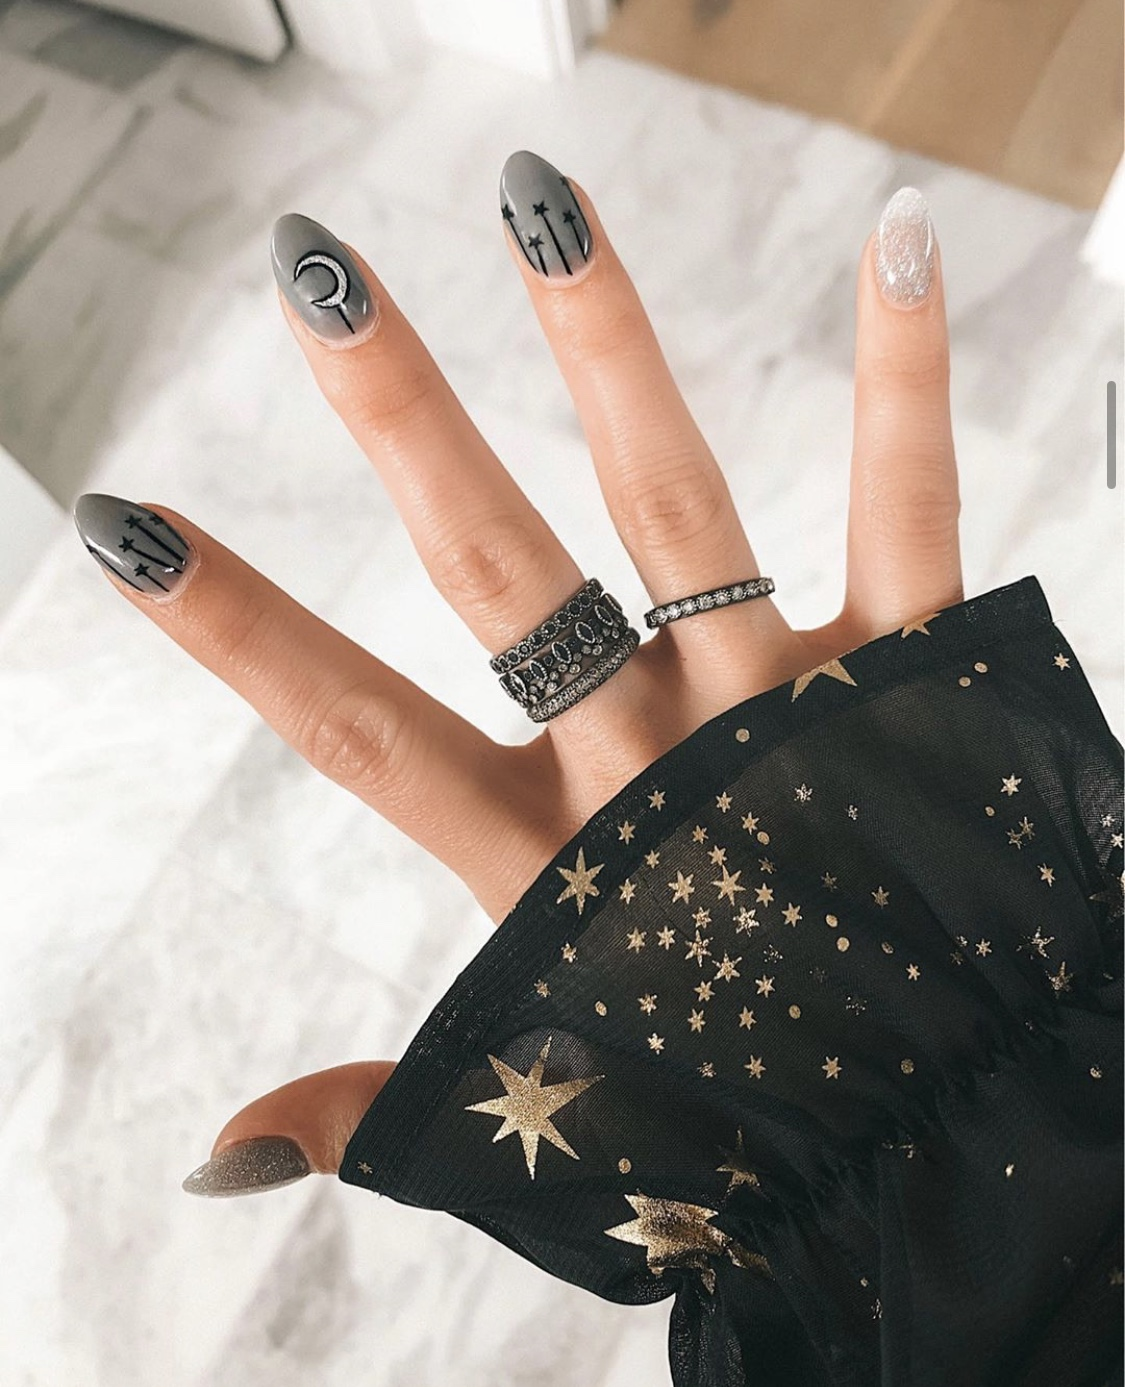 Nail Art Designs by popular Austin beauty blog, Dressed to Kill: image of a woman with grey and black moon and stars nail art.